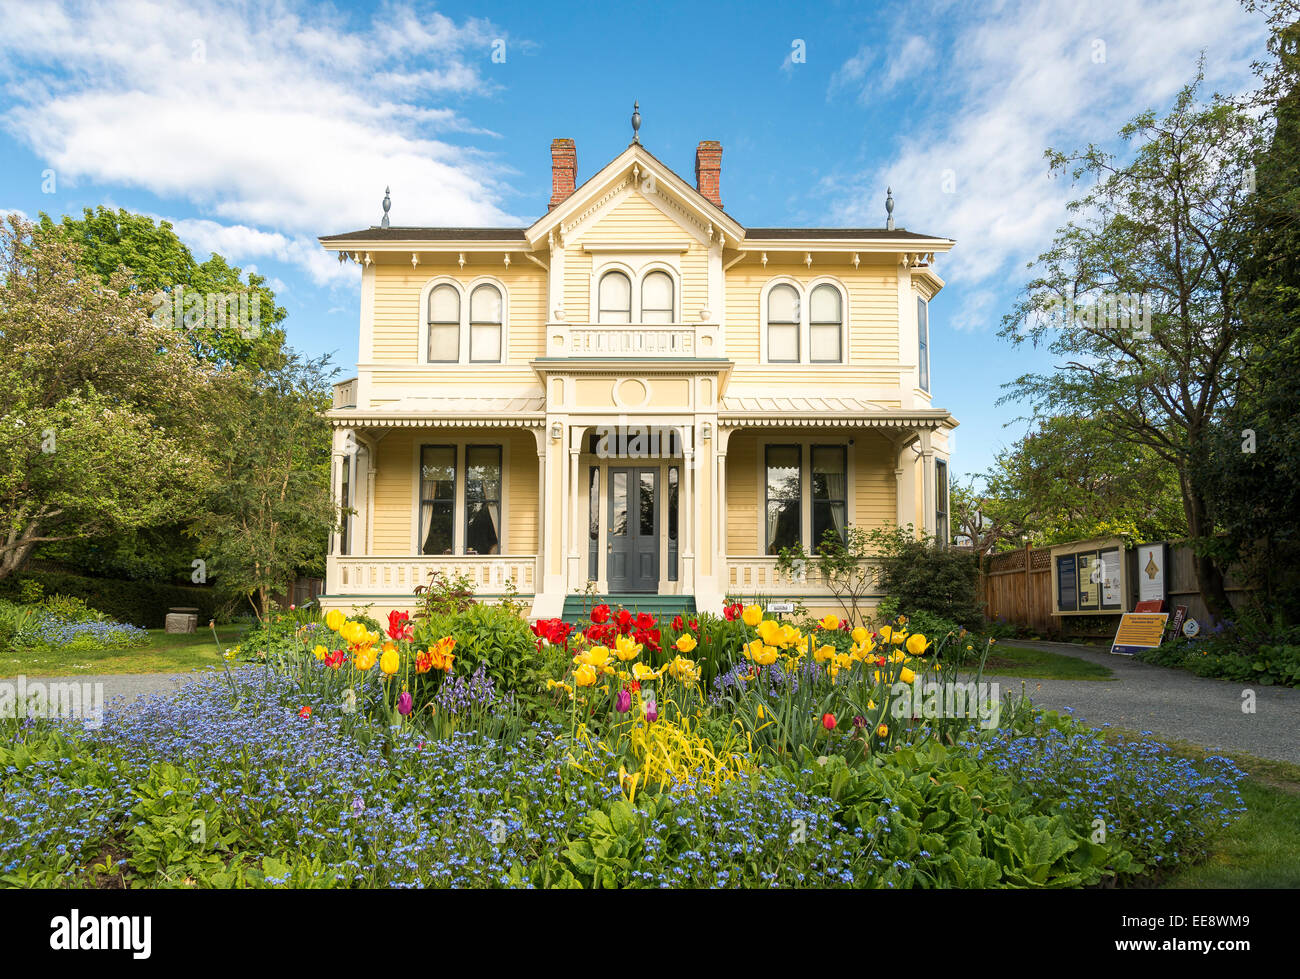 Carr House, birth place of artist Emily Carr, Victoria, British Columbia, Canada - Stock Image